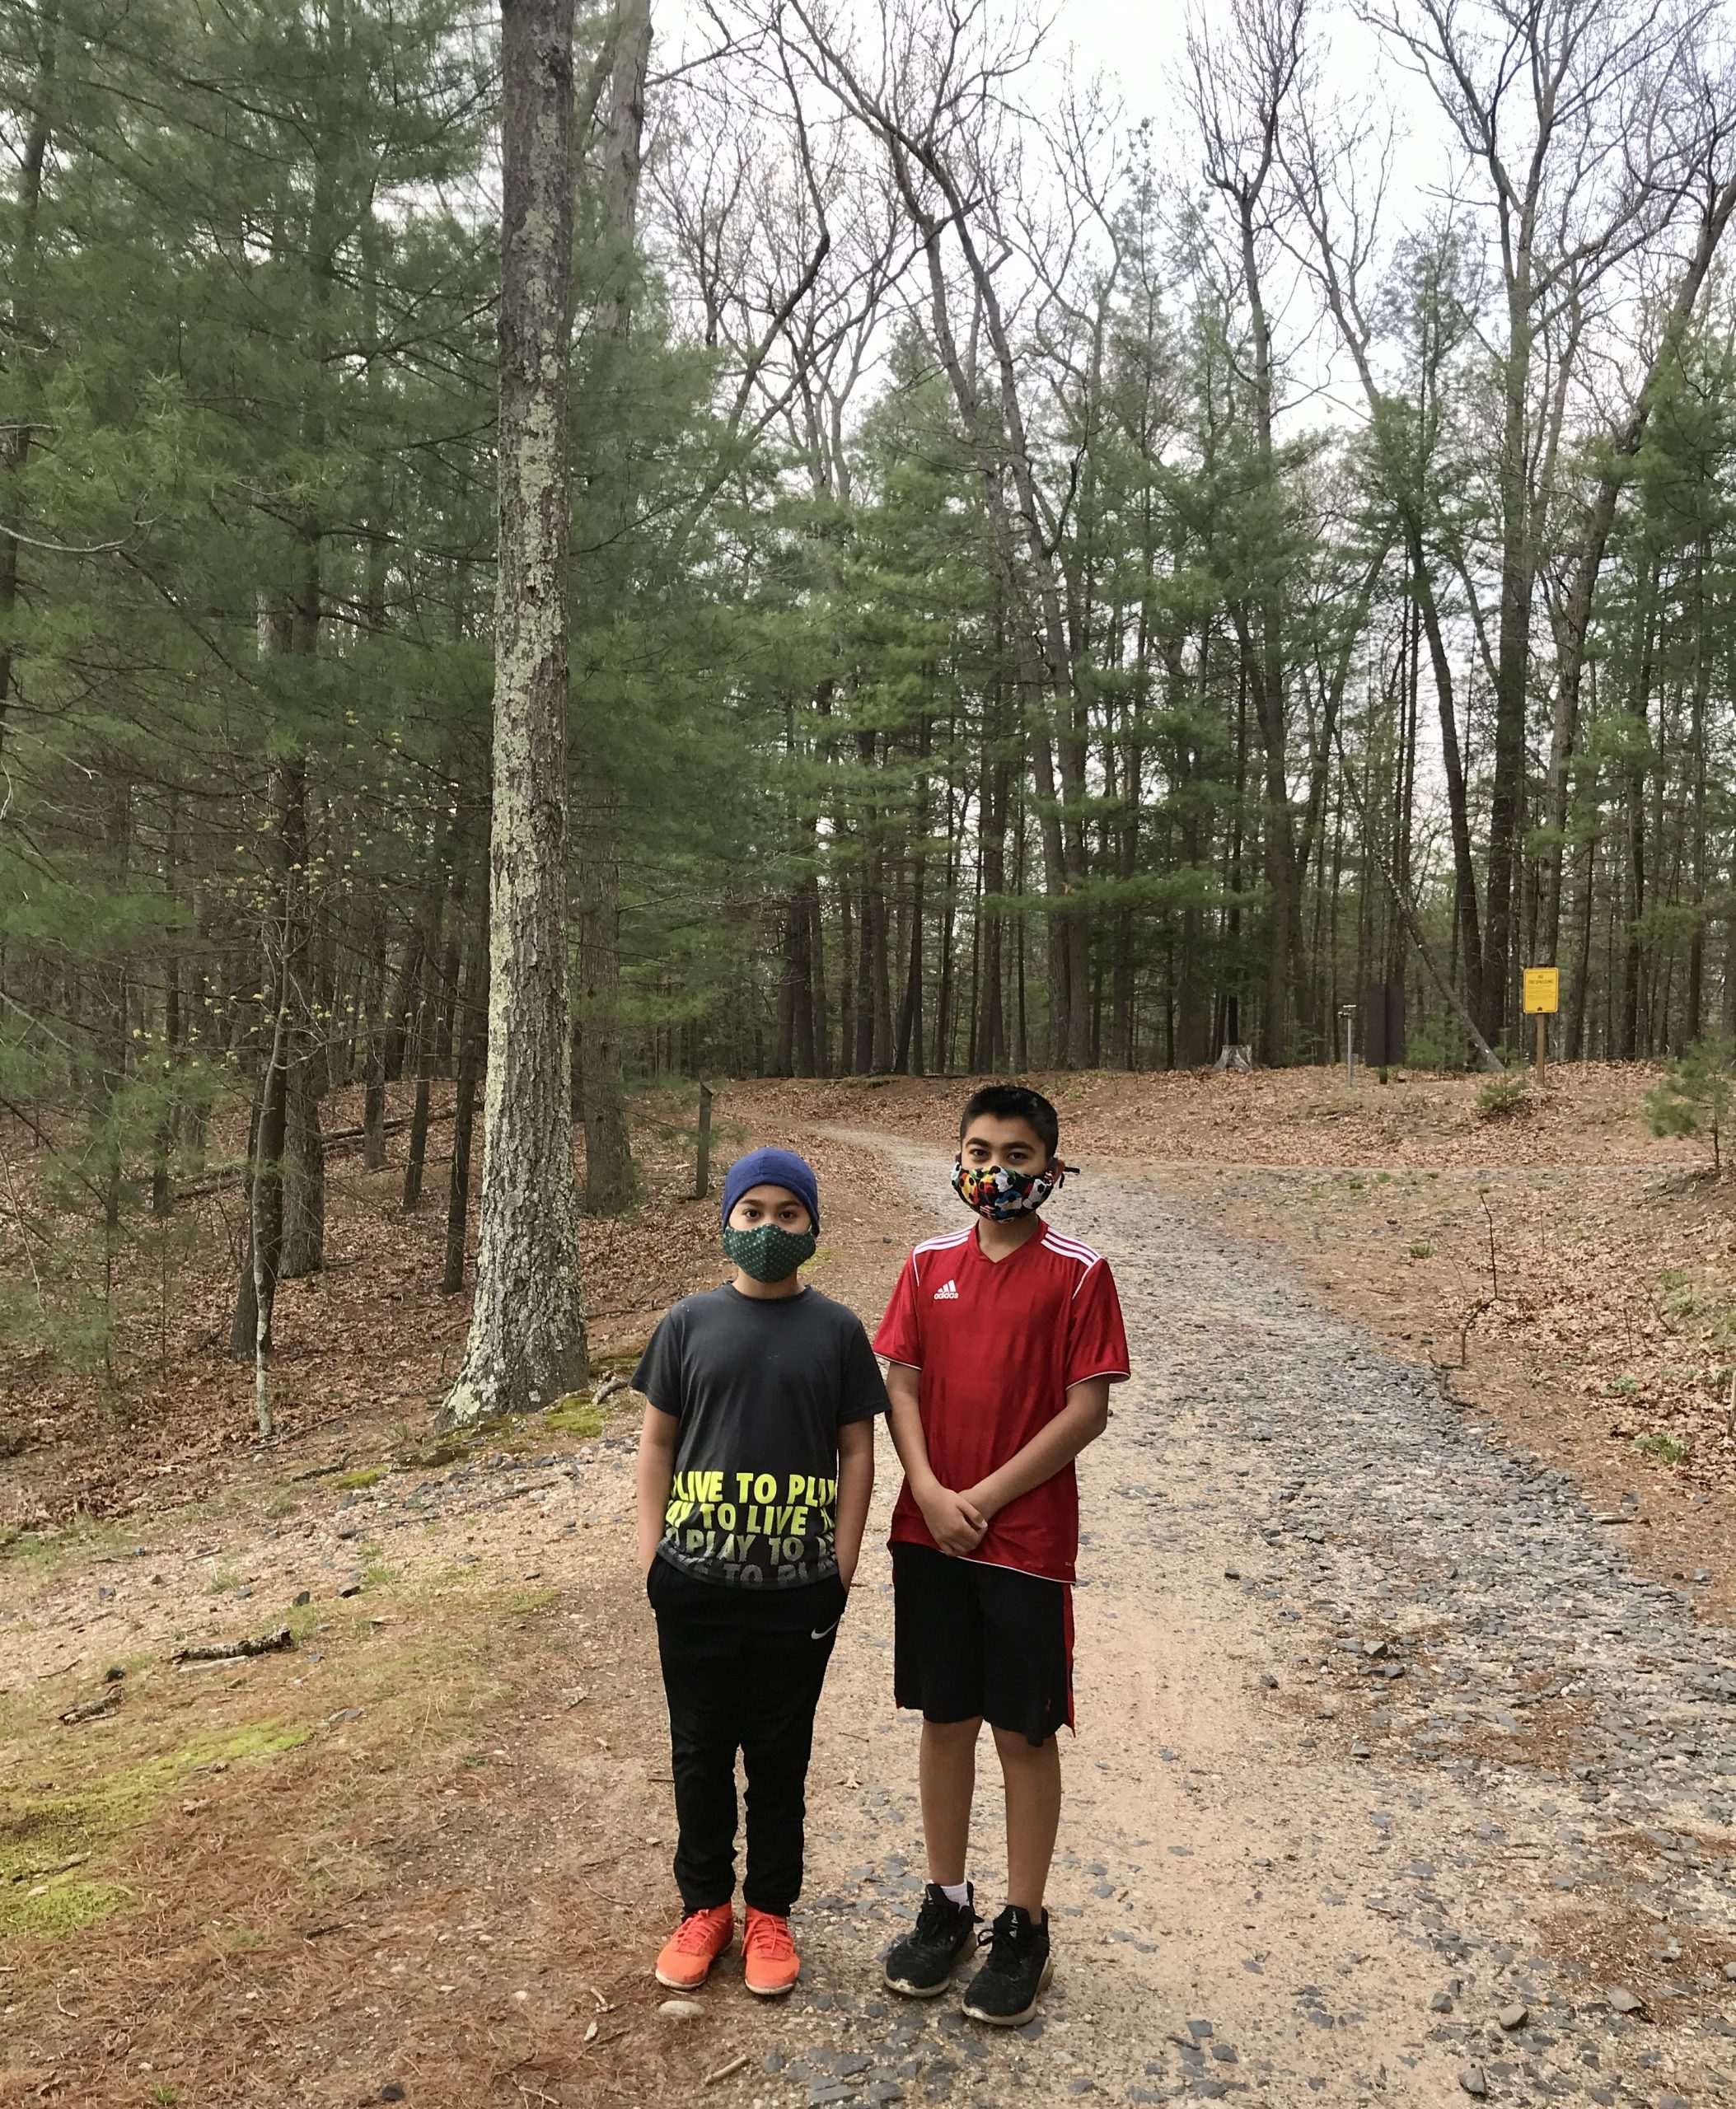 Two boys on a hiking trail, wearing face masks.